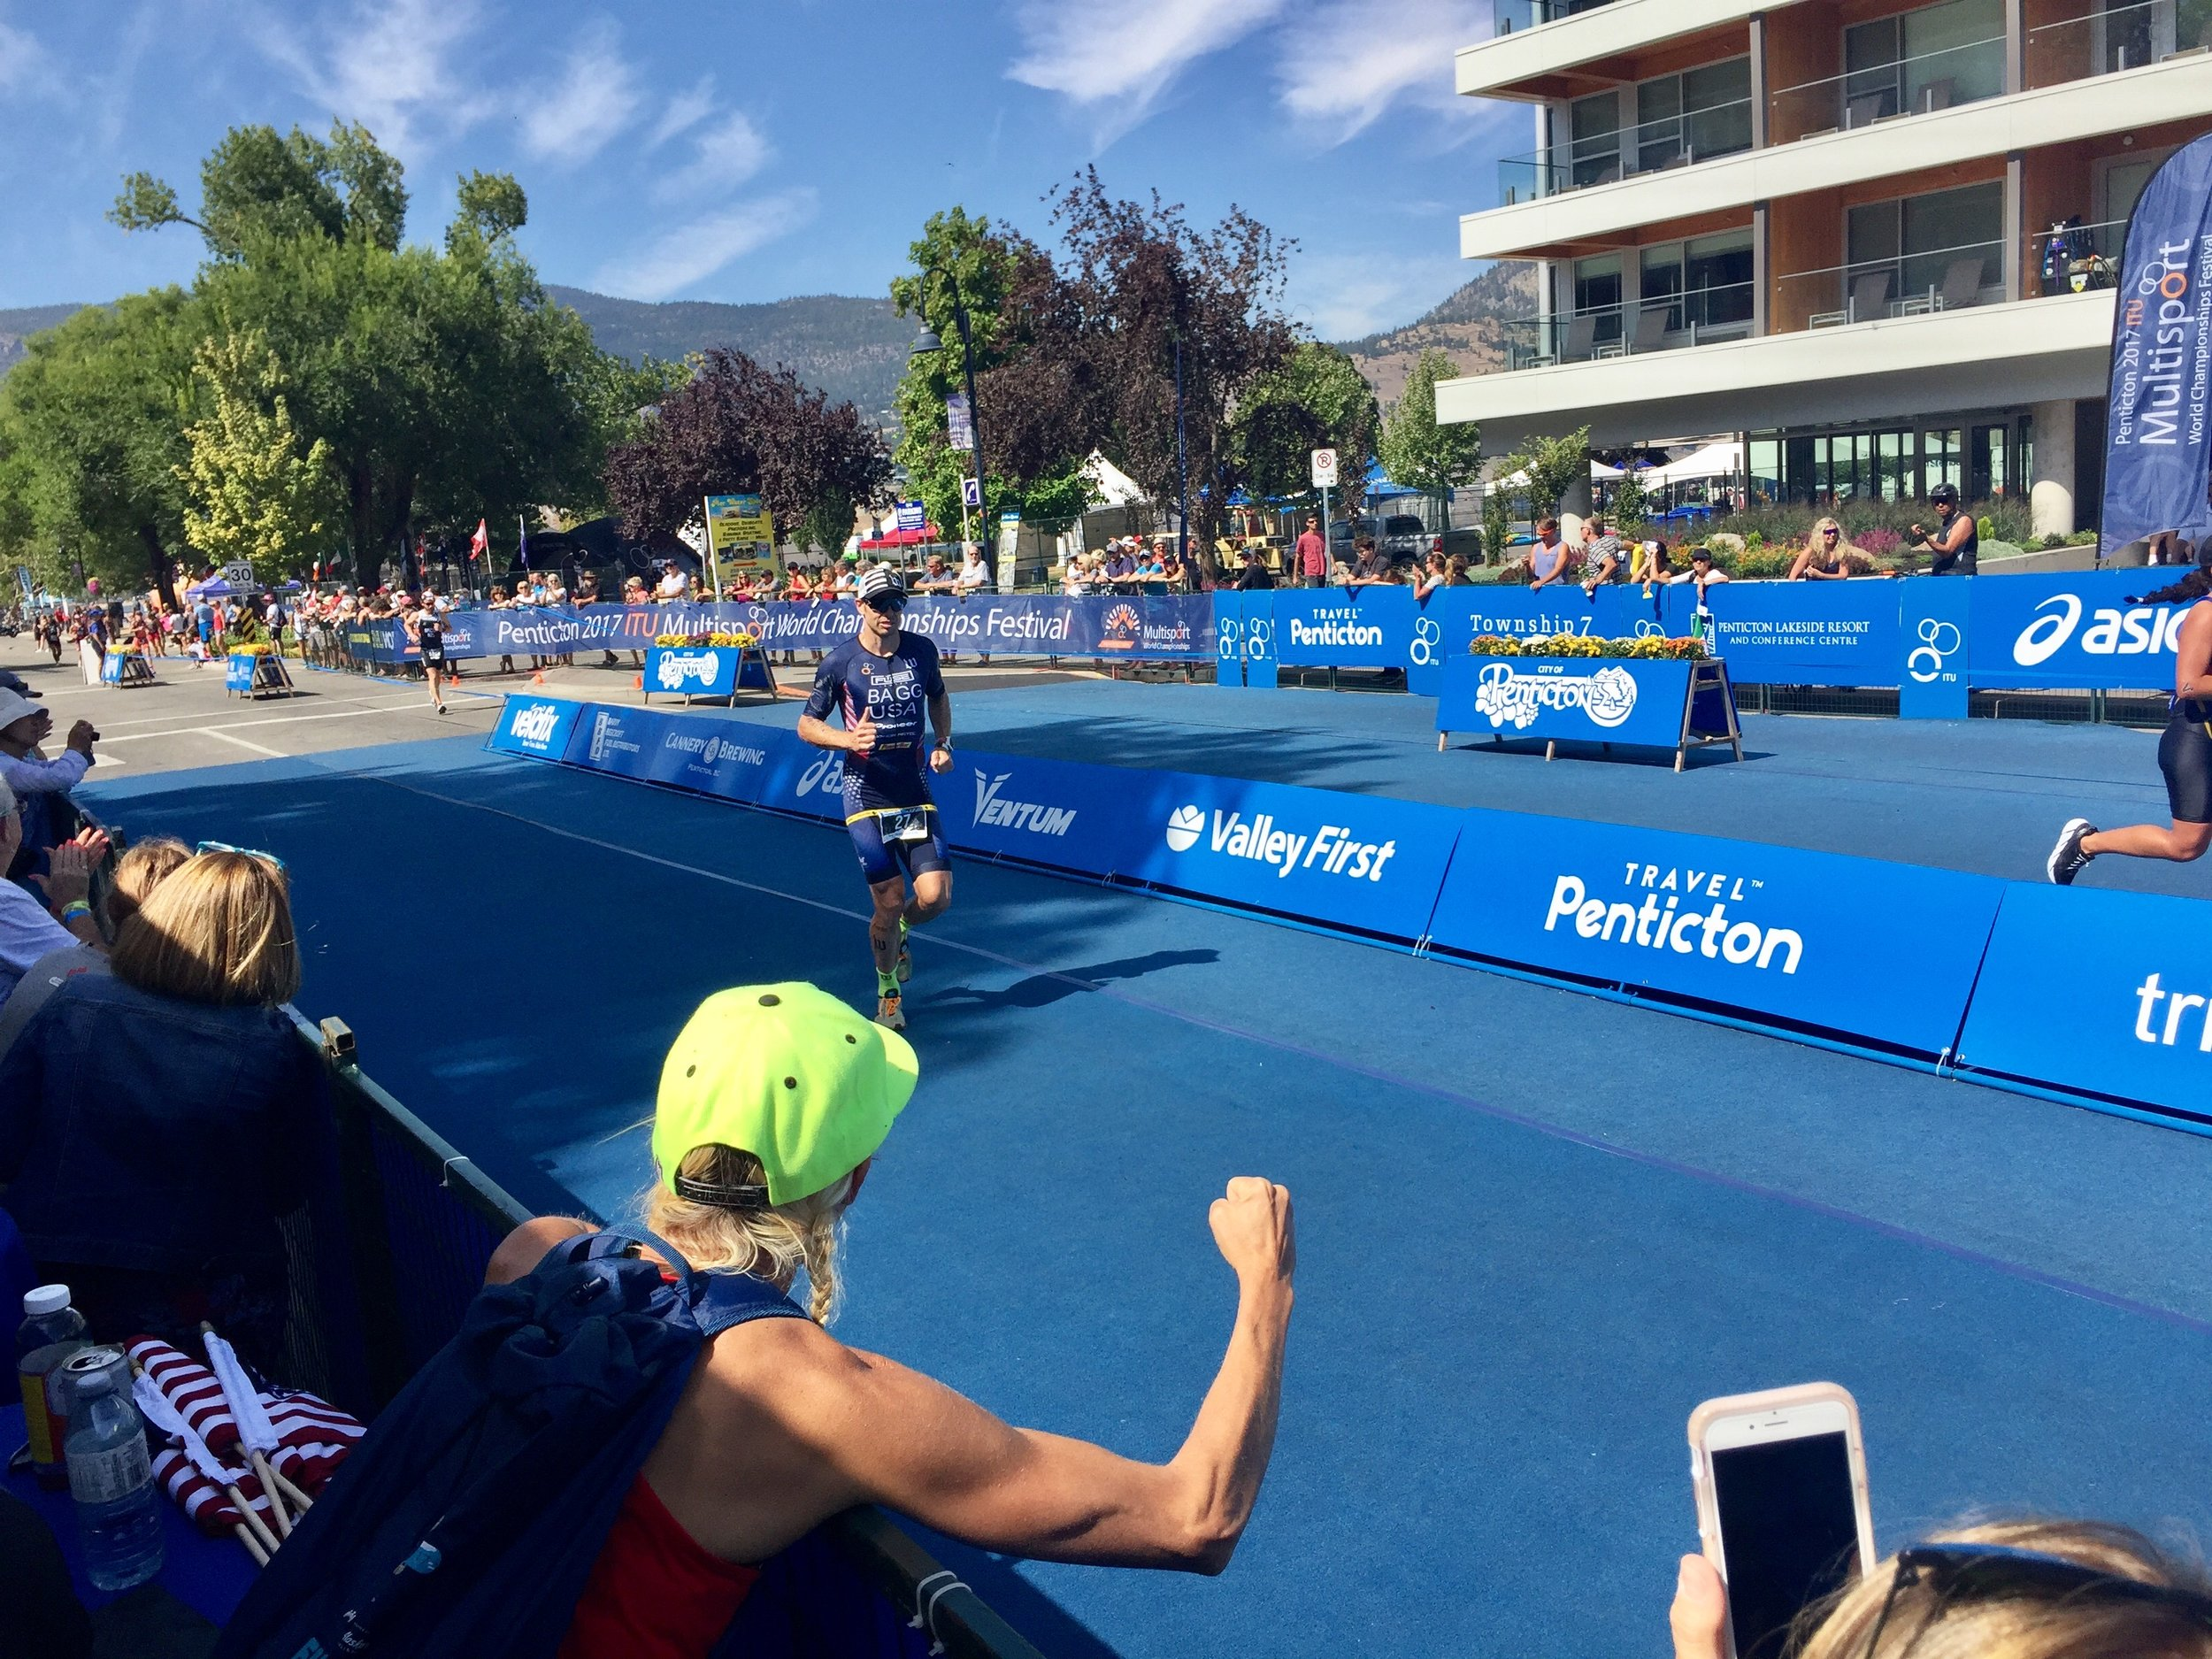 Bagg at 2017 ITU Multisport World Championships in Penticton, B.C., directed by Mike